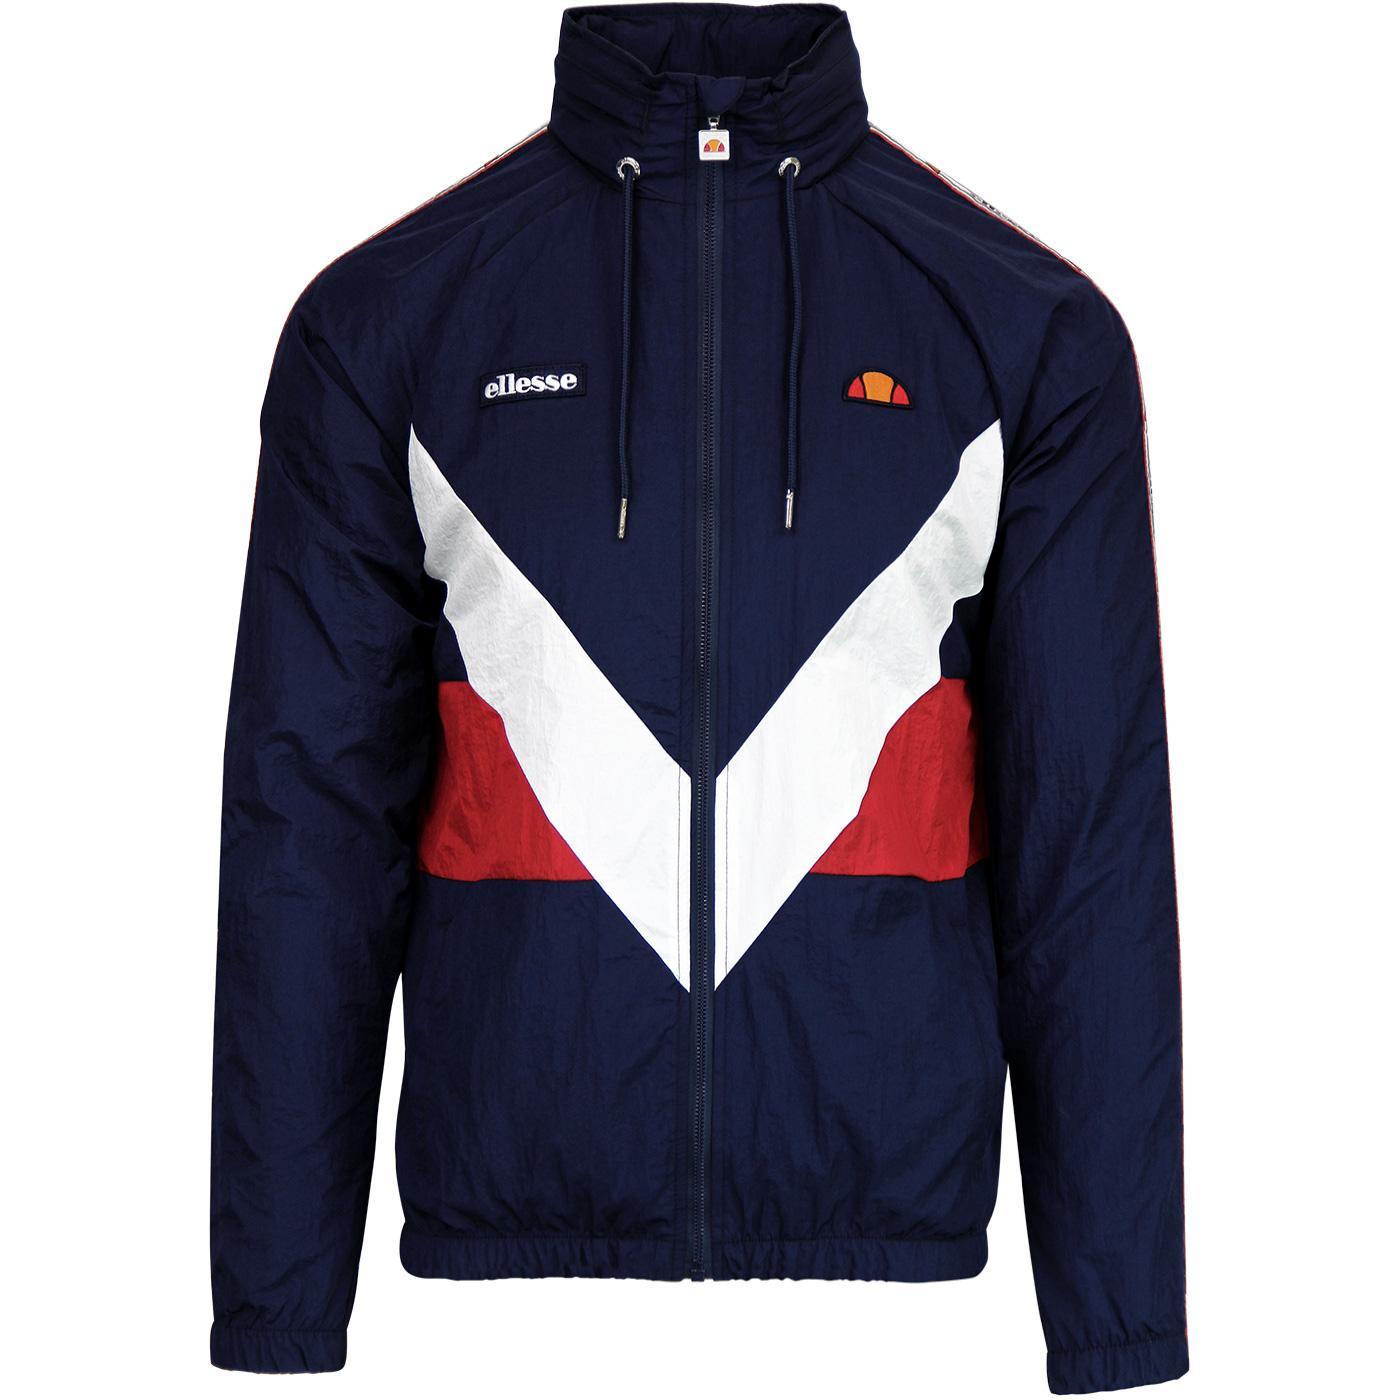 Gerano ELLESSE Retro 80s Shell Suit Jacket in Navy